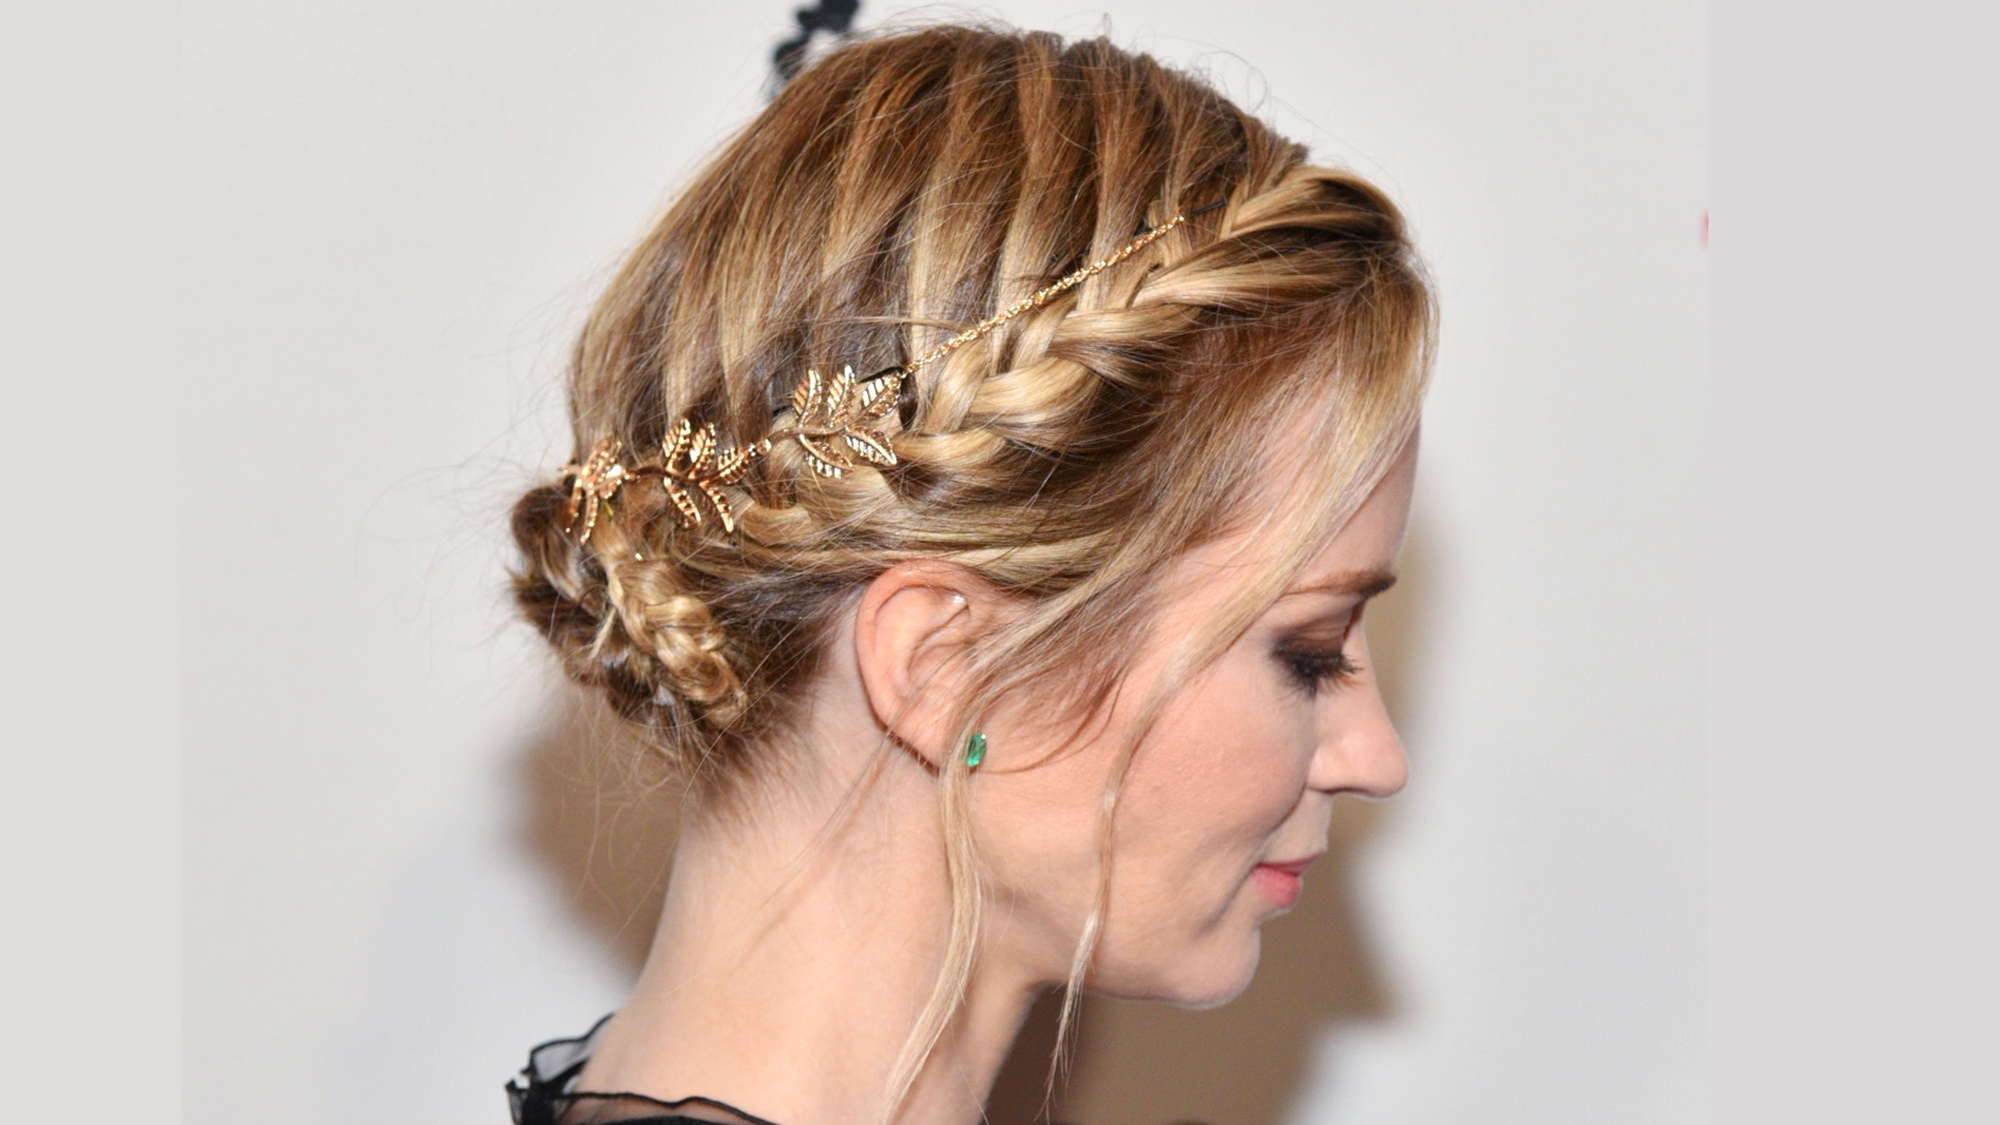 Plait hairstyles to take straight to your hairdresser's this season